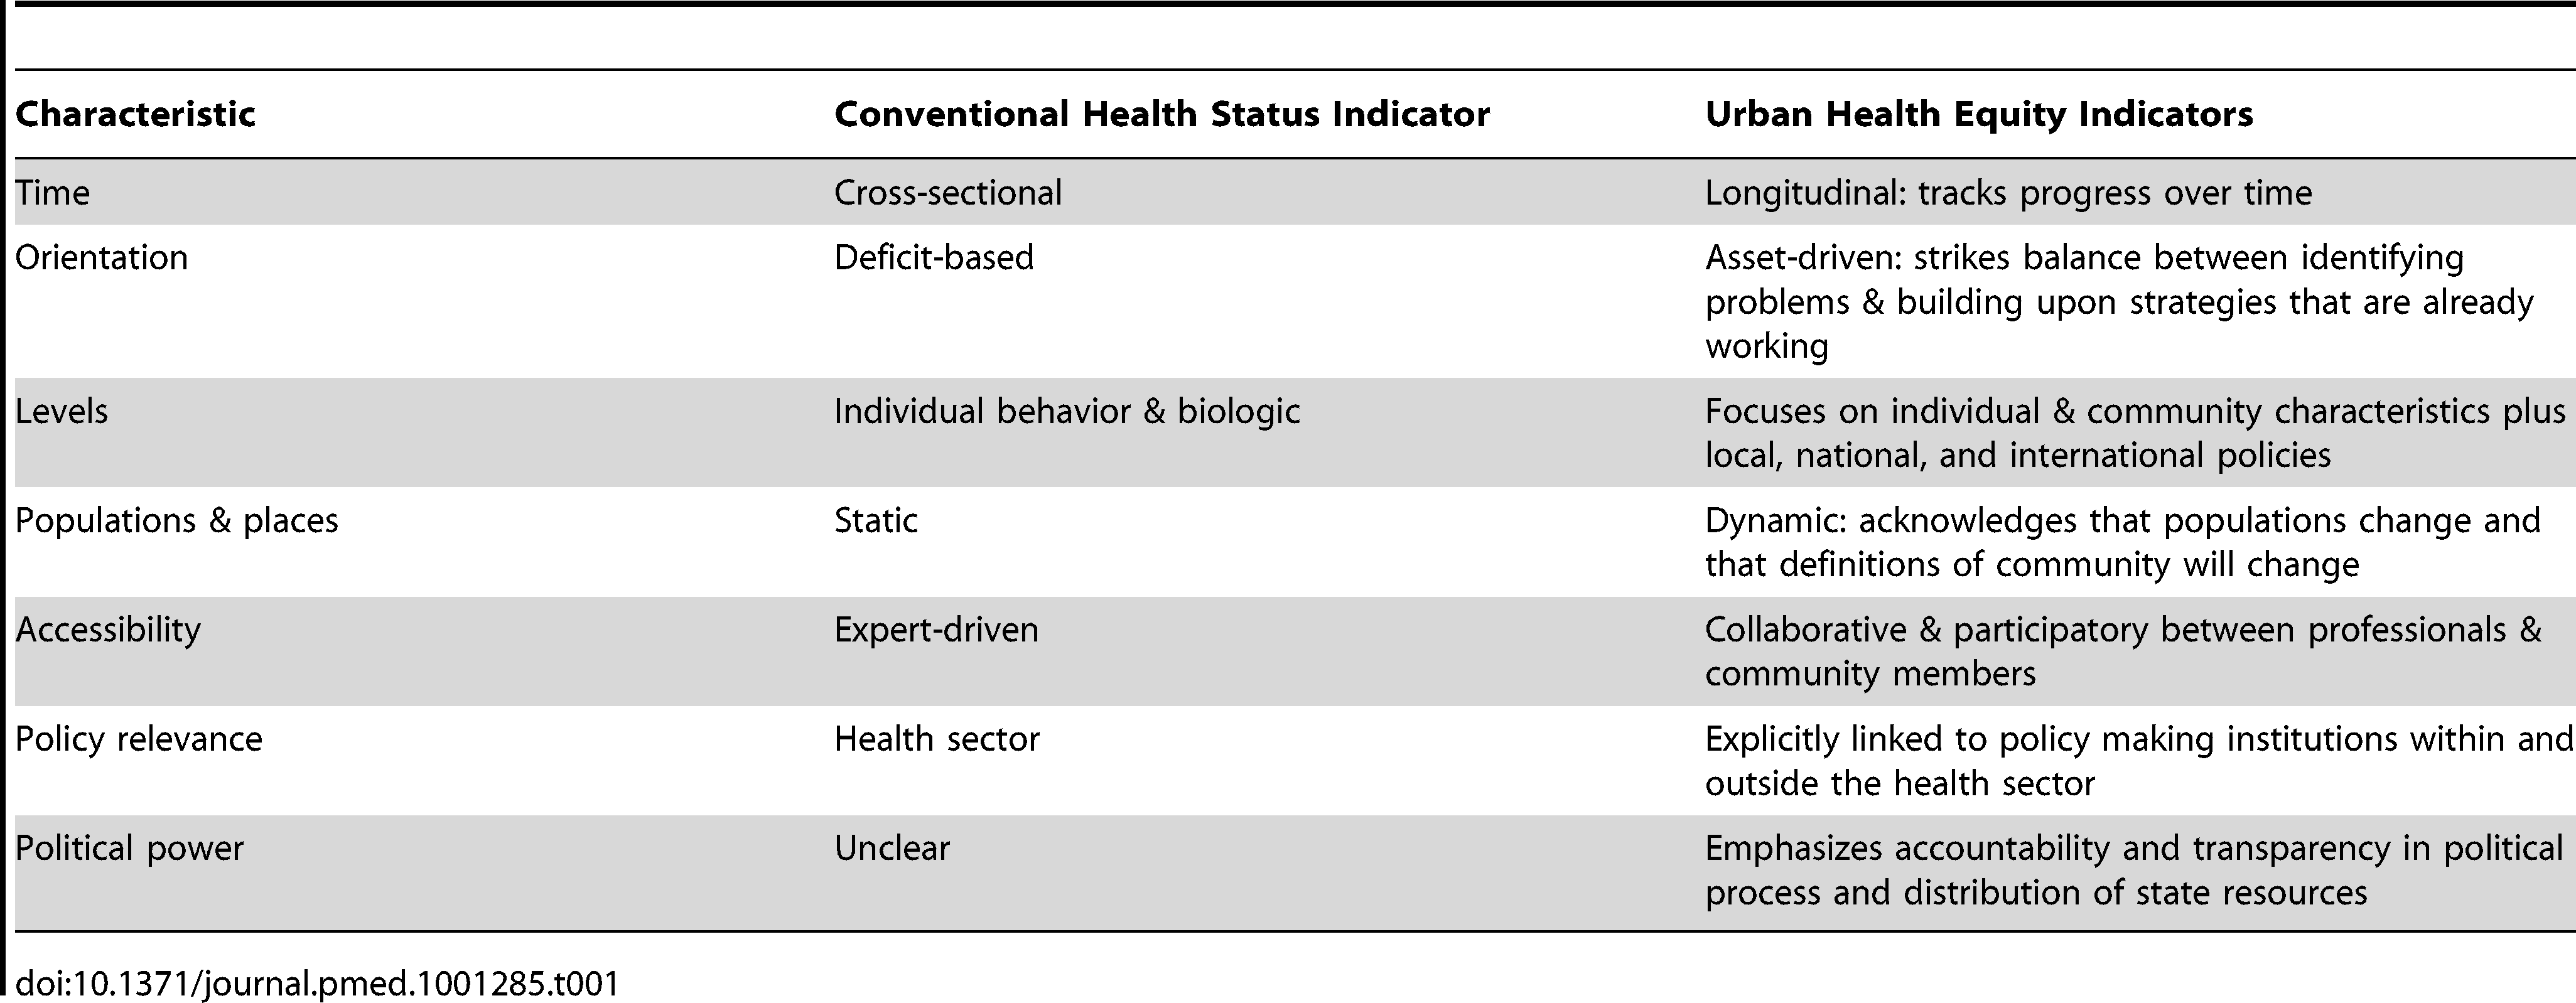 Comparison of conventional and our approach to urban health equity indicators.